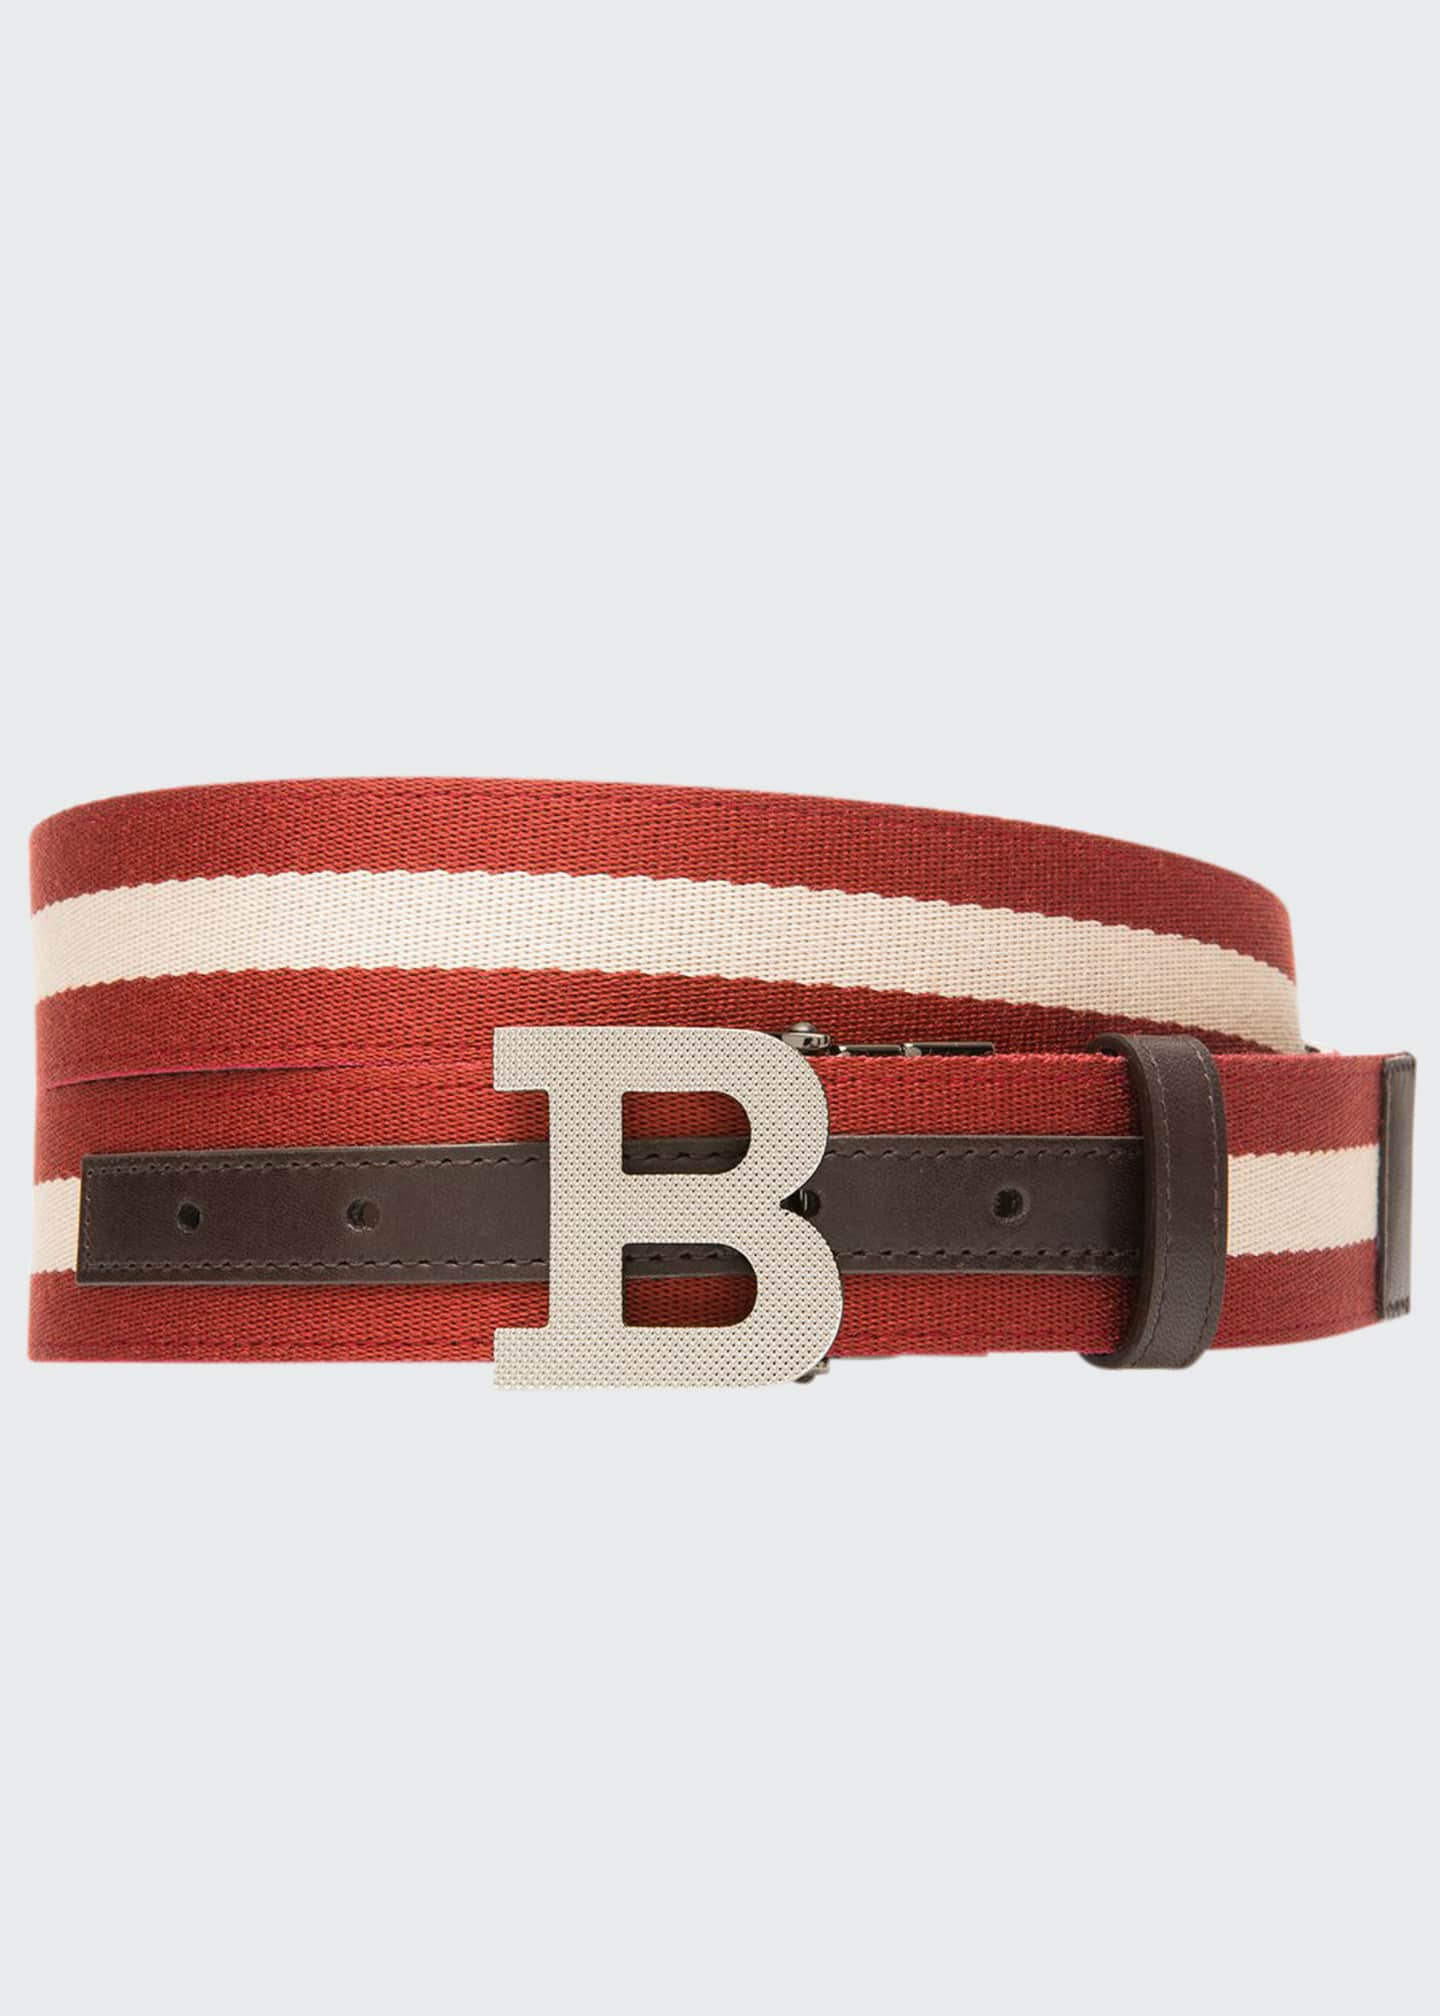 Bally Men's B-Buckle Webbing Belt